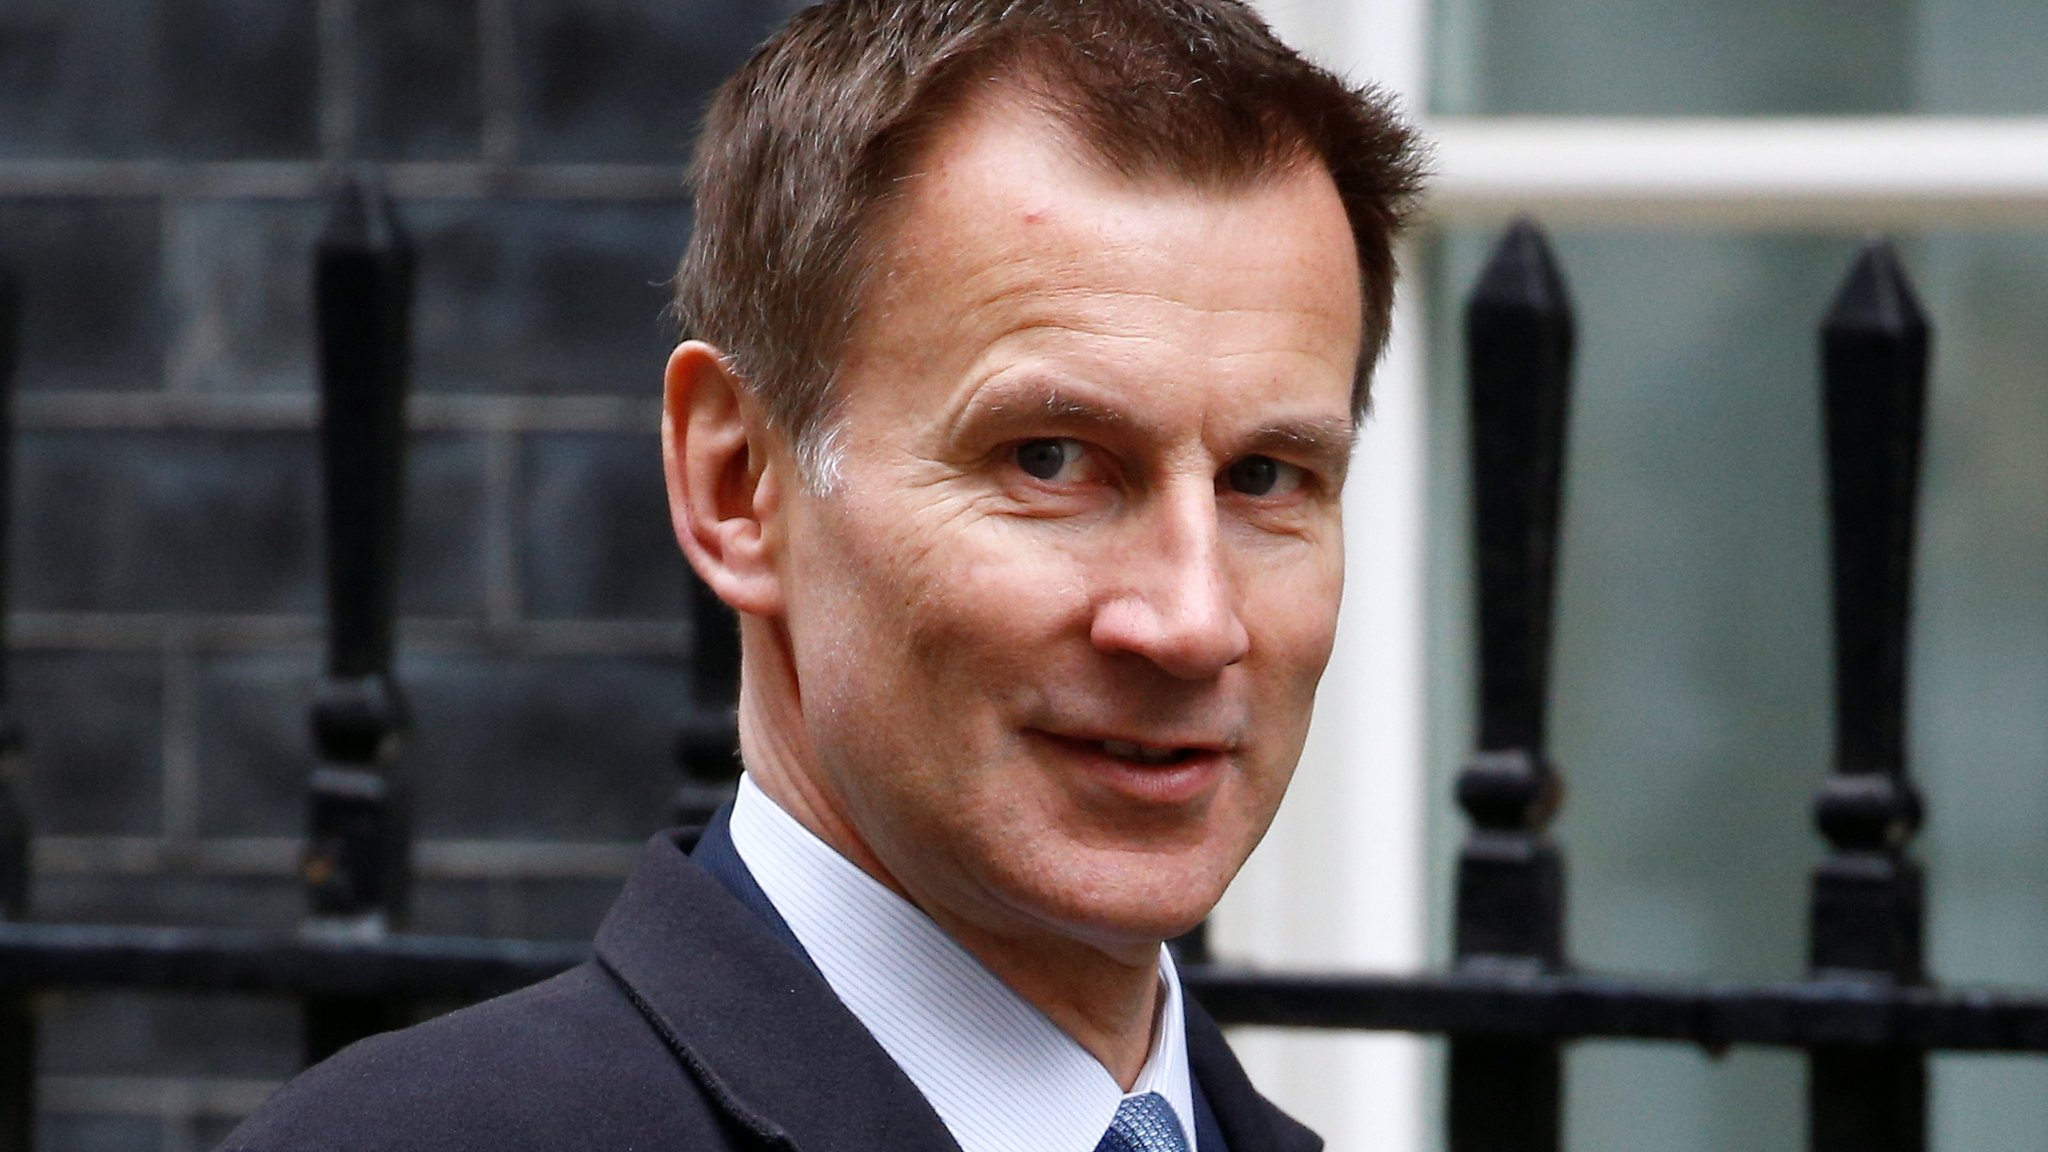 Hunt: No PM 'in living memory' tested like May on Brexit